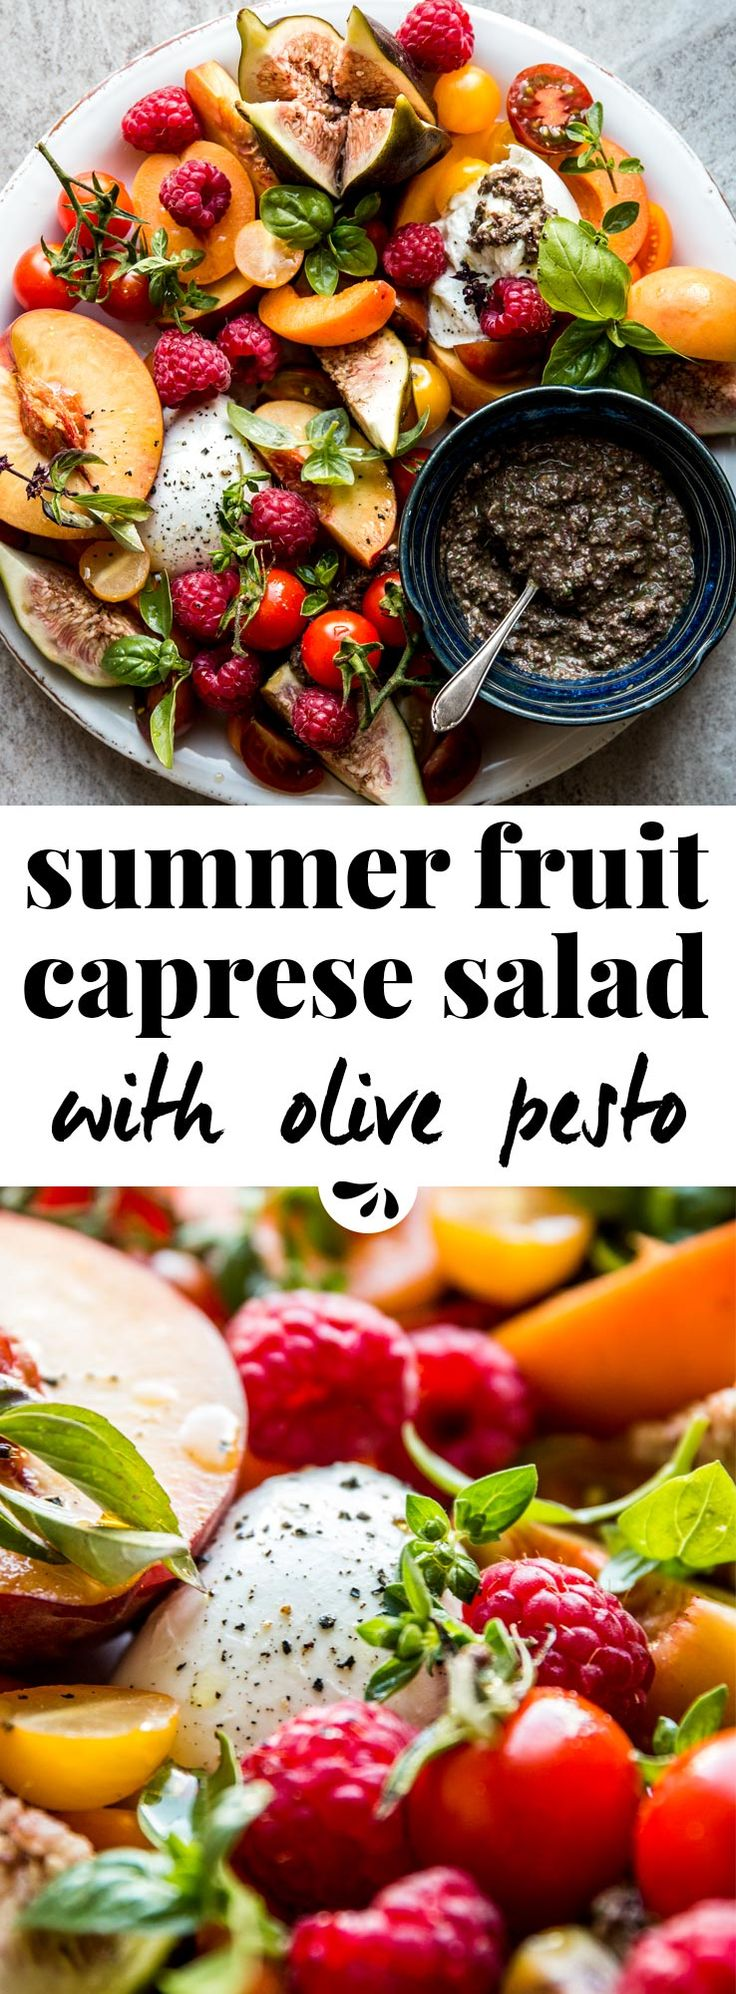 This summer fruit caprese salad is healthy, easy, simple & full of fresh produce. Cherry tomato, peach, raspberry, figs and more stone fruit turn it into the best with buffalo mozzarella or burrata. Traditional Italian caprese doesn't have a dressing with balsamic vinegar. Instead, serve with black olive and basil pesto on the side. The perfect meal with a loaf of ciabatta bread and some prosciutto. Arranged on a platter for nice presentation, great to impress a crowd at your next dinner…